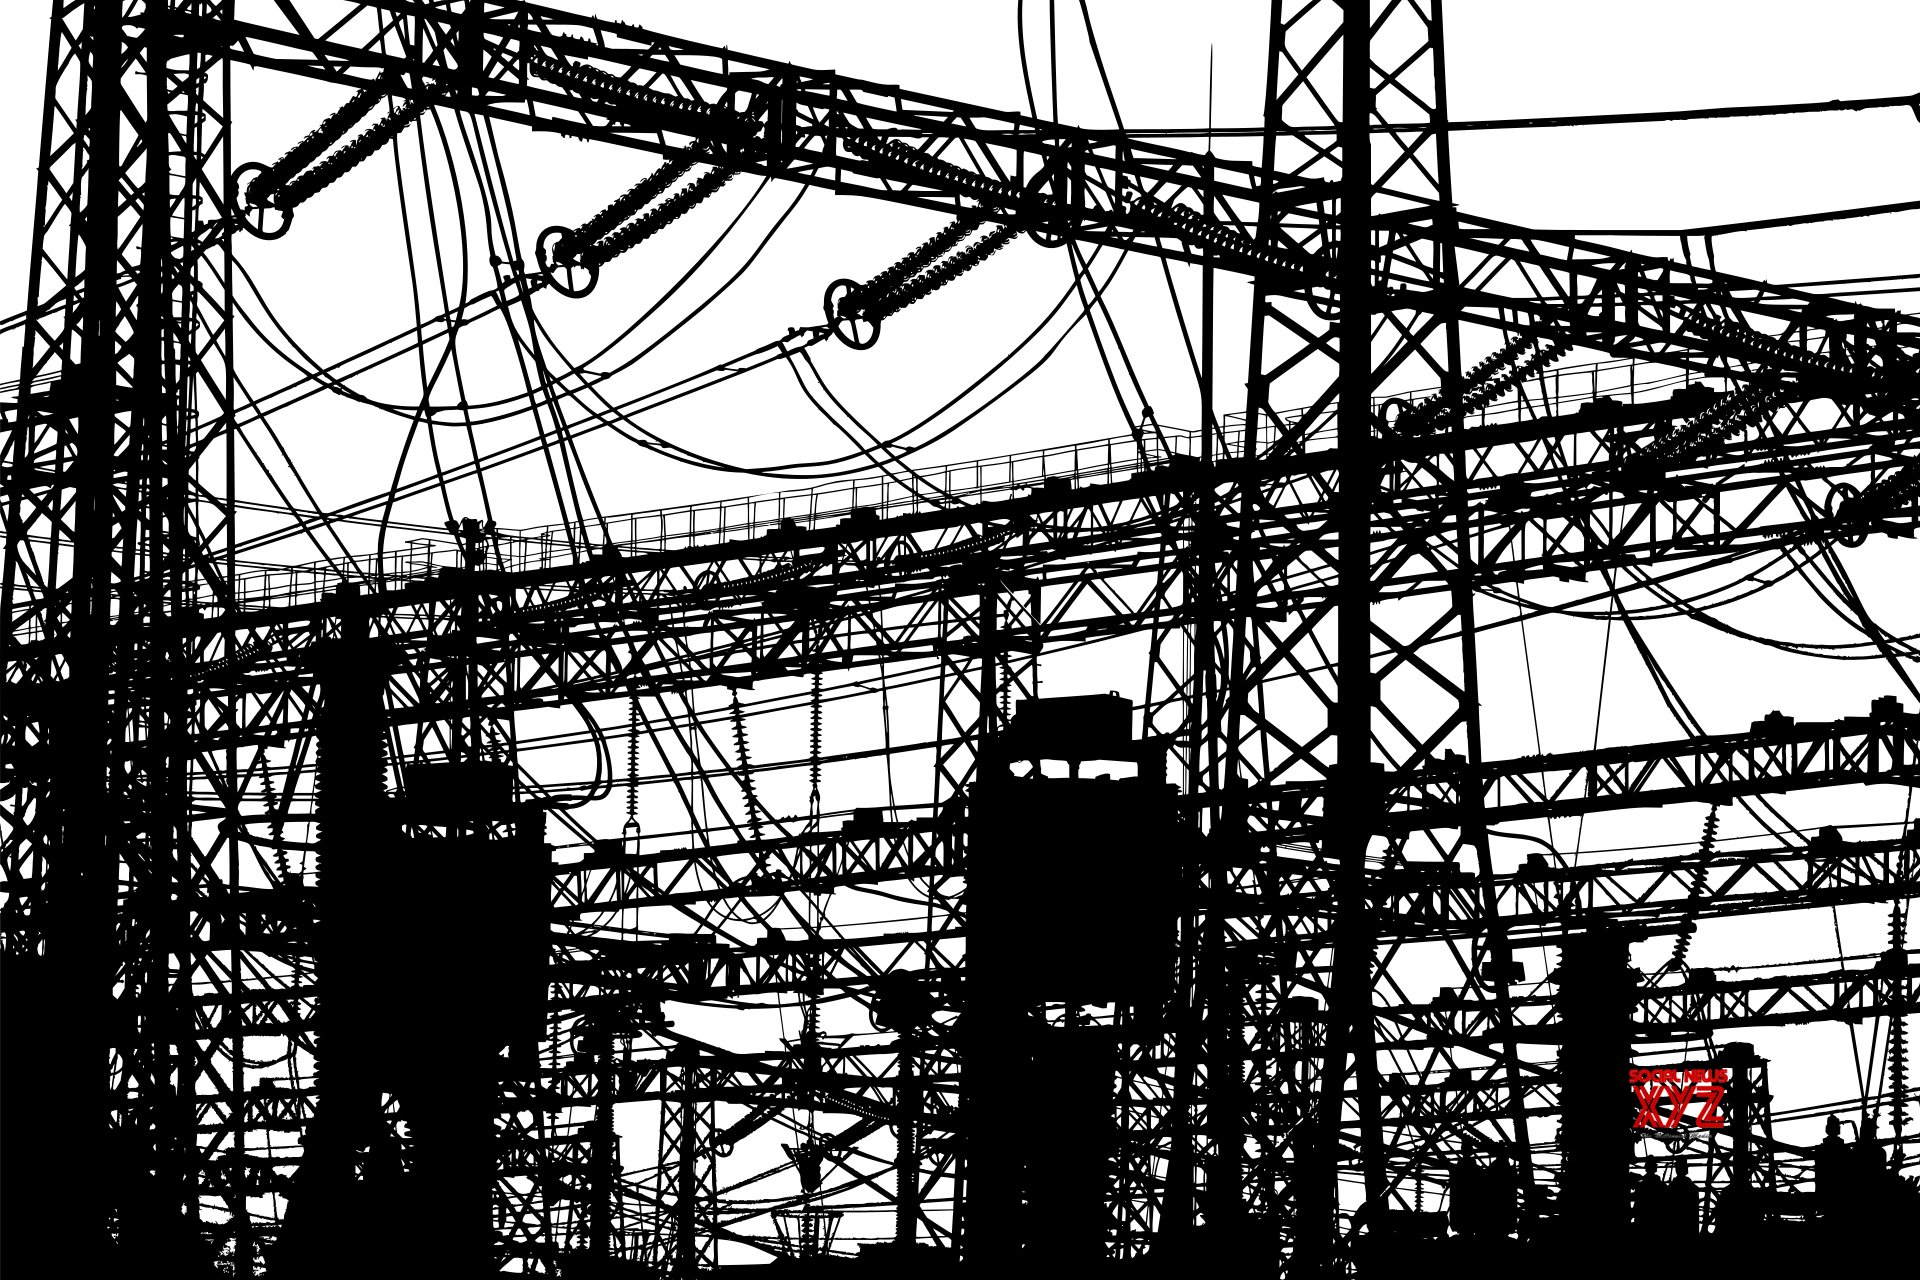 Power regulator wants govt not to infringe regulatory jurisdiction